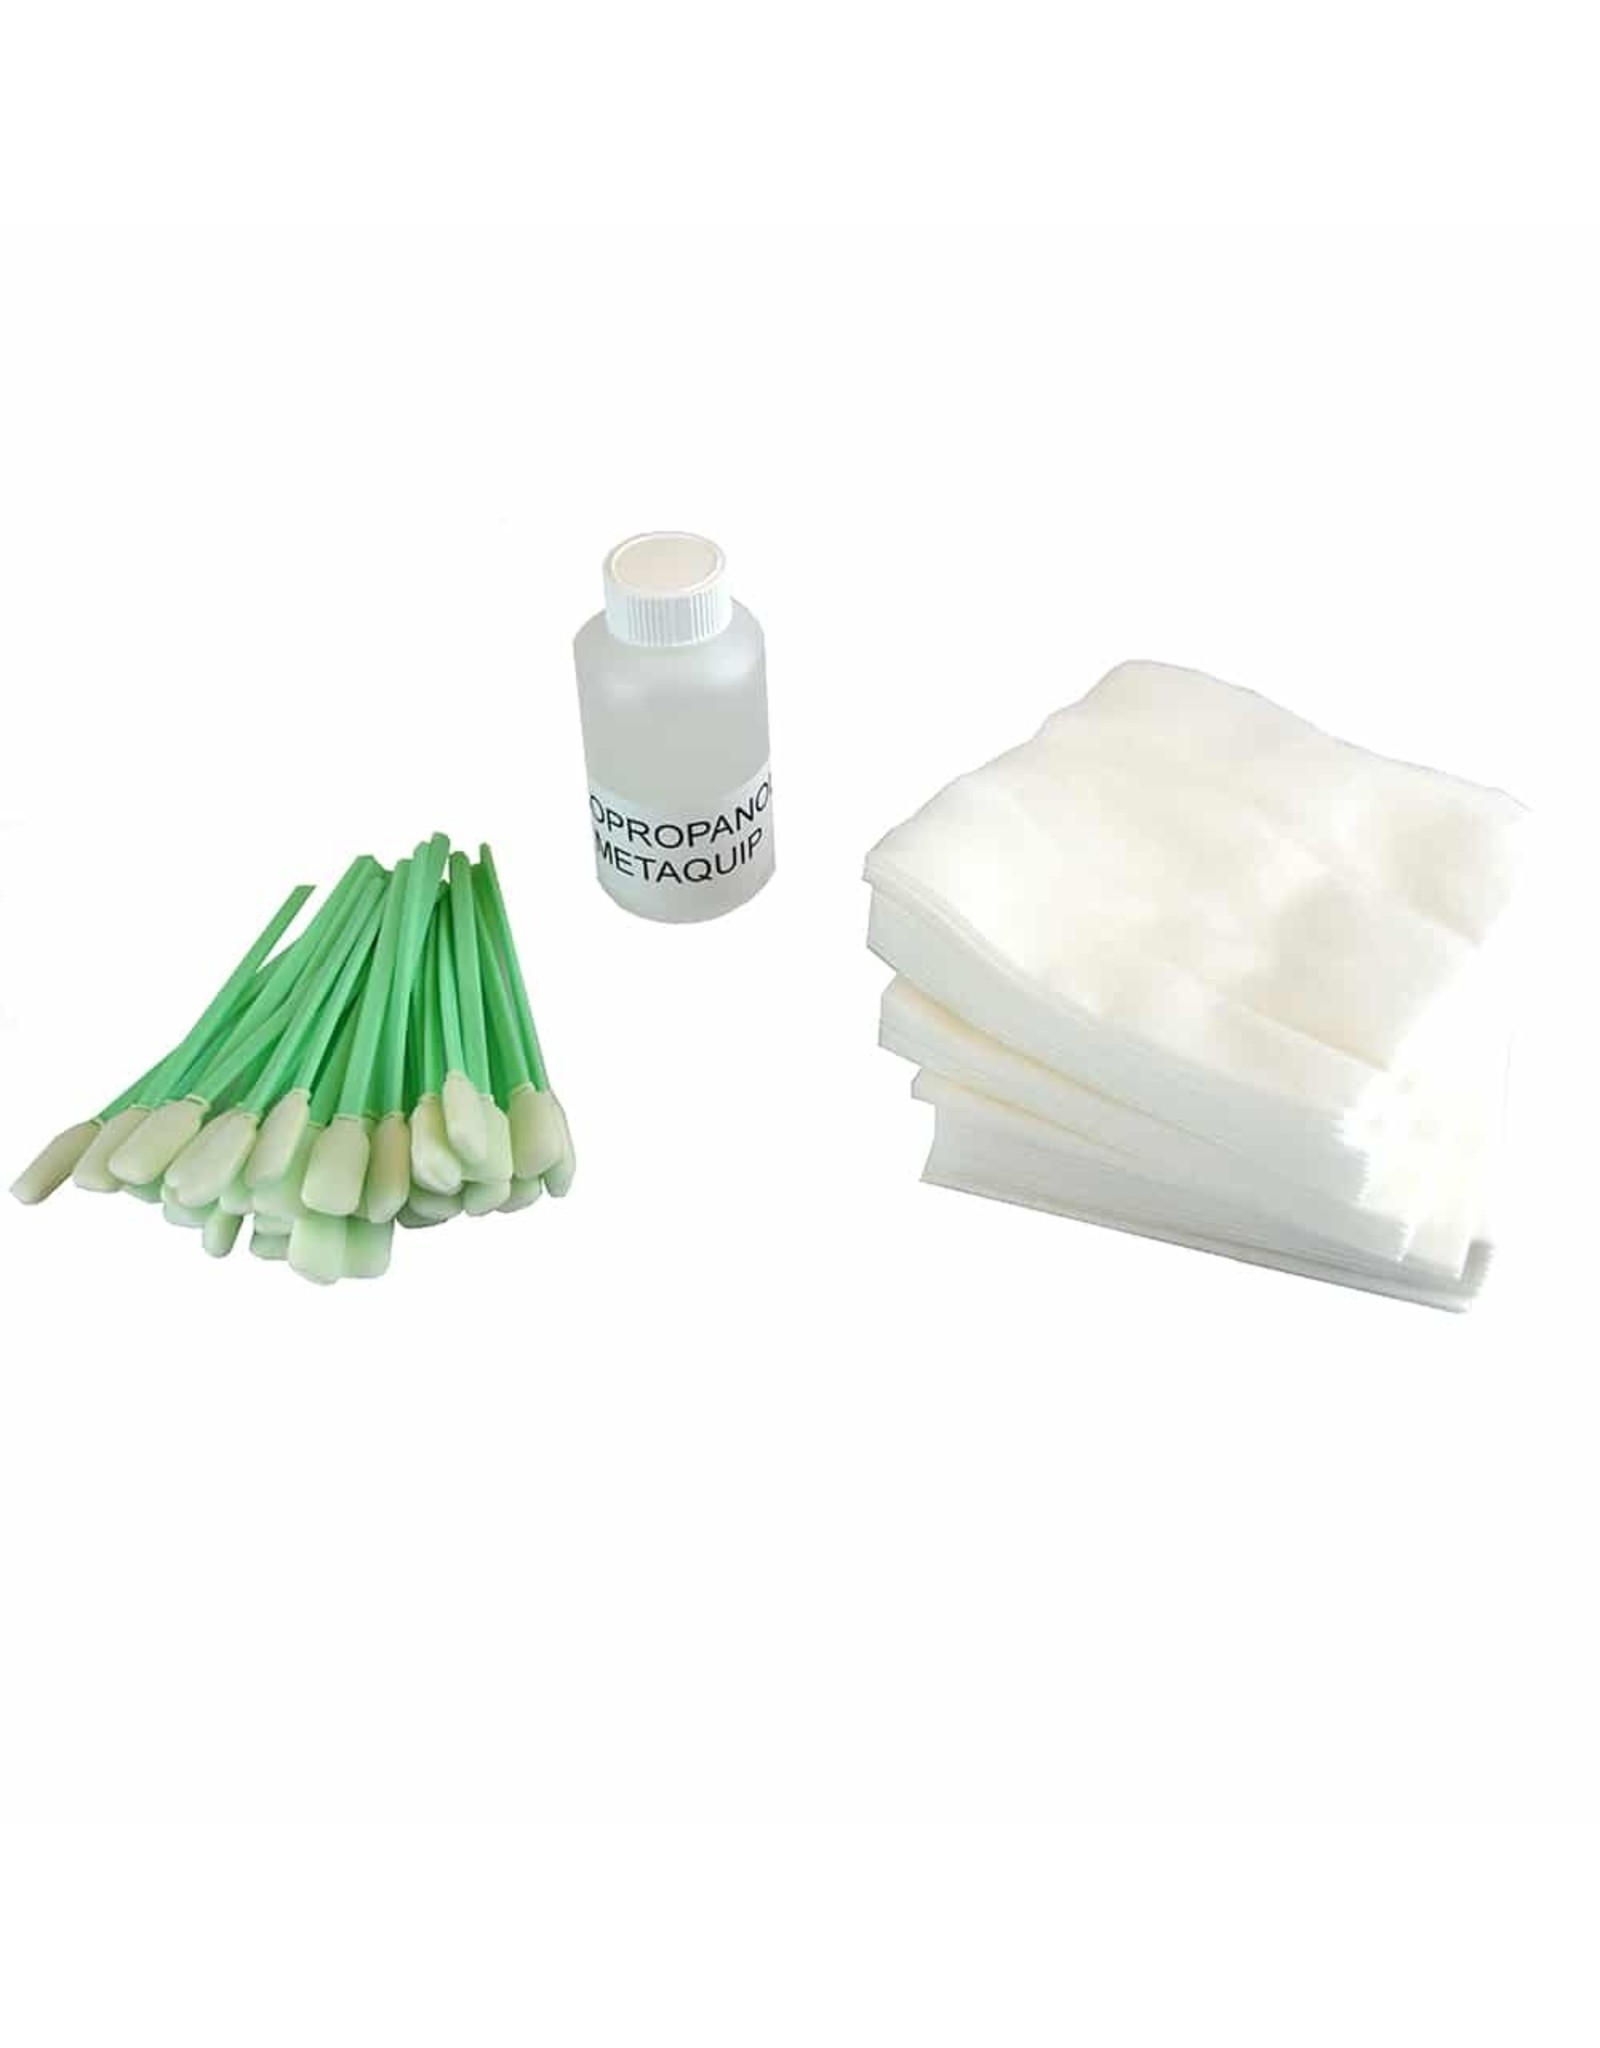 Metaquip Cleaning set of lenses and mirrors laser machine